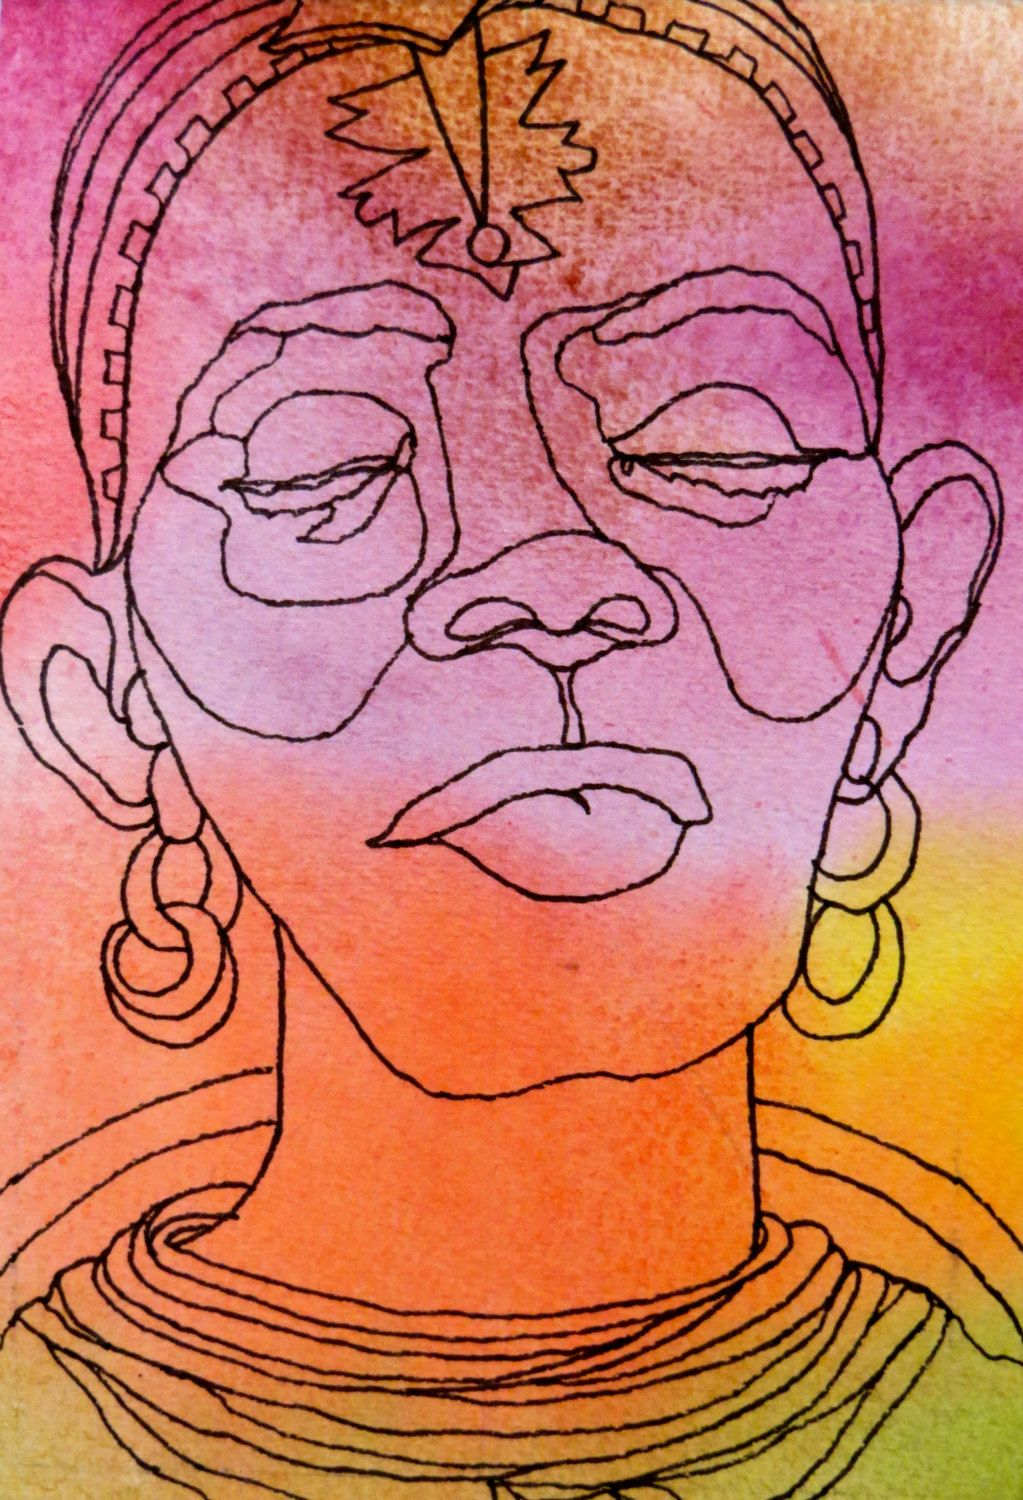 Continuous Line Drawing Of Face : Samburu sister an original artwork ink drawing on